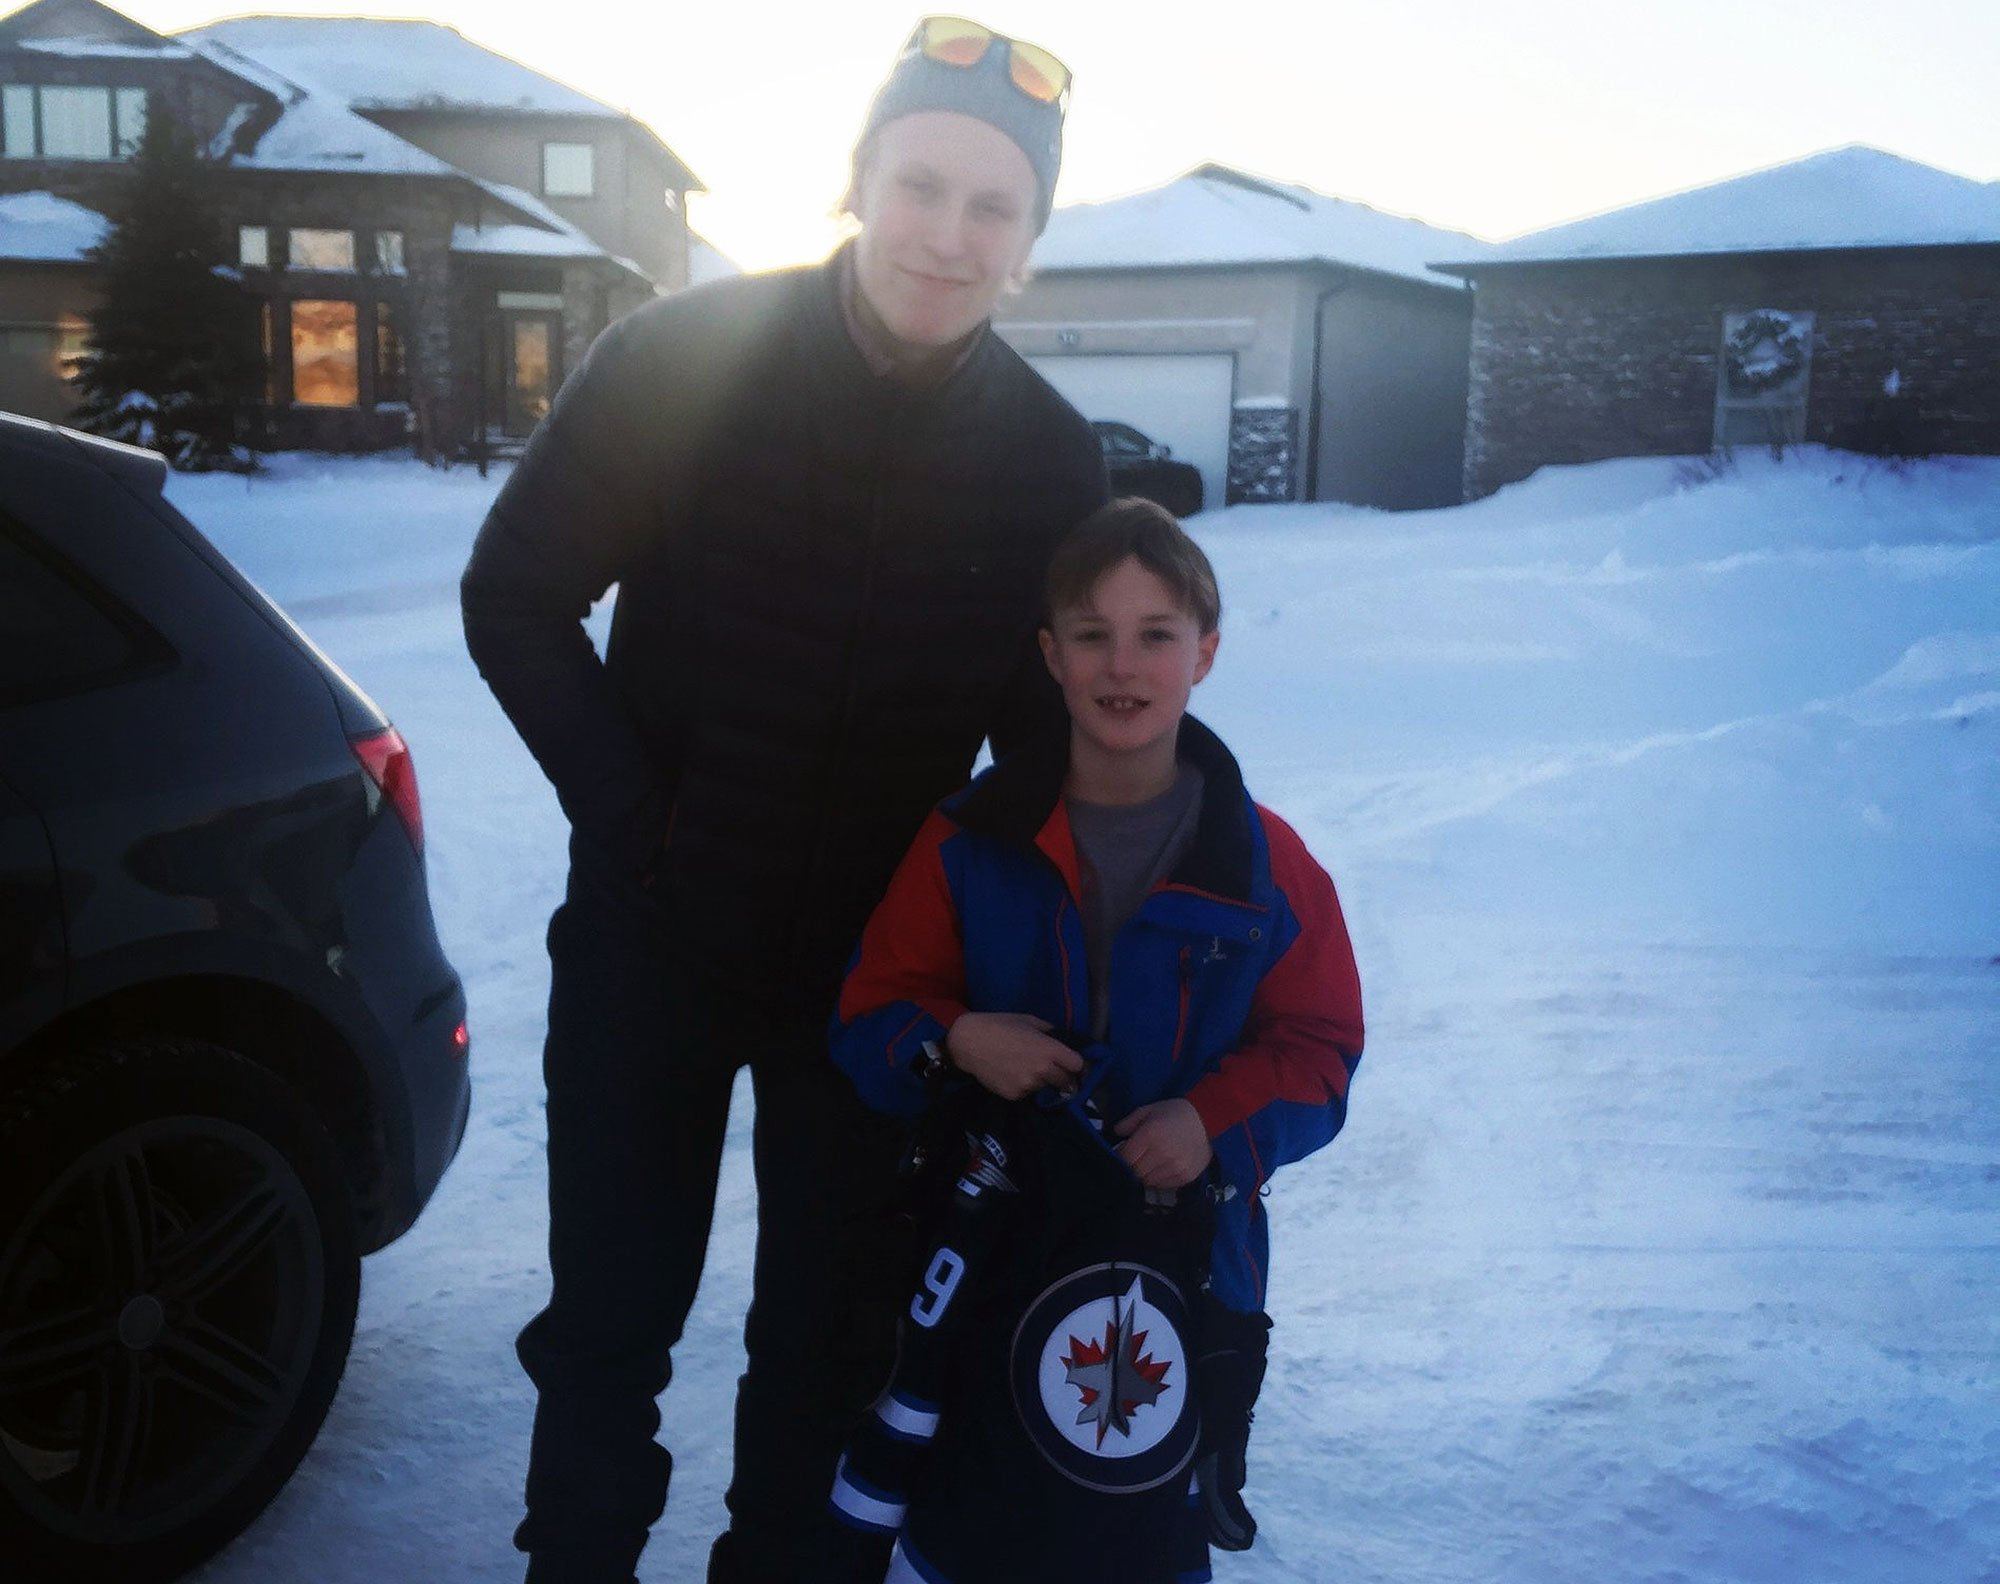 Patrick Laine's birthday surprise (Photo: @marcopolo_1979)